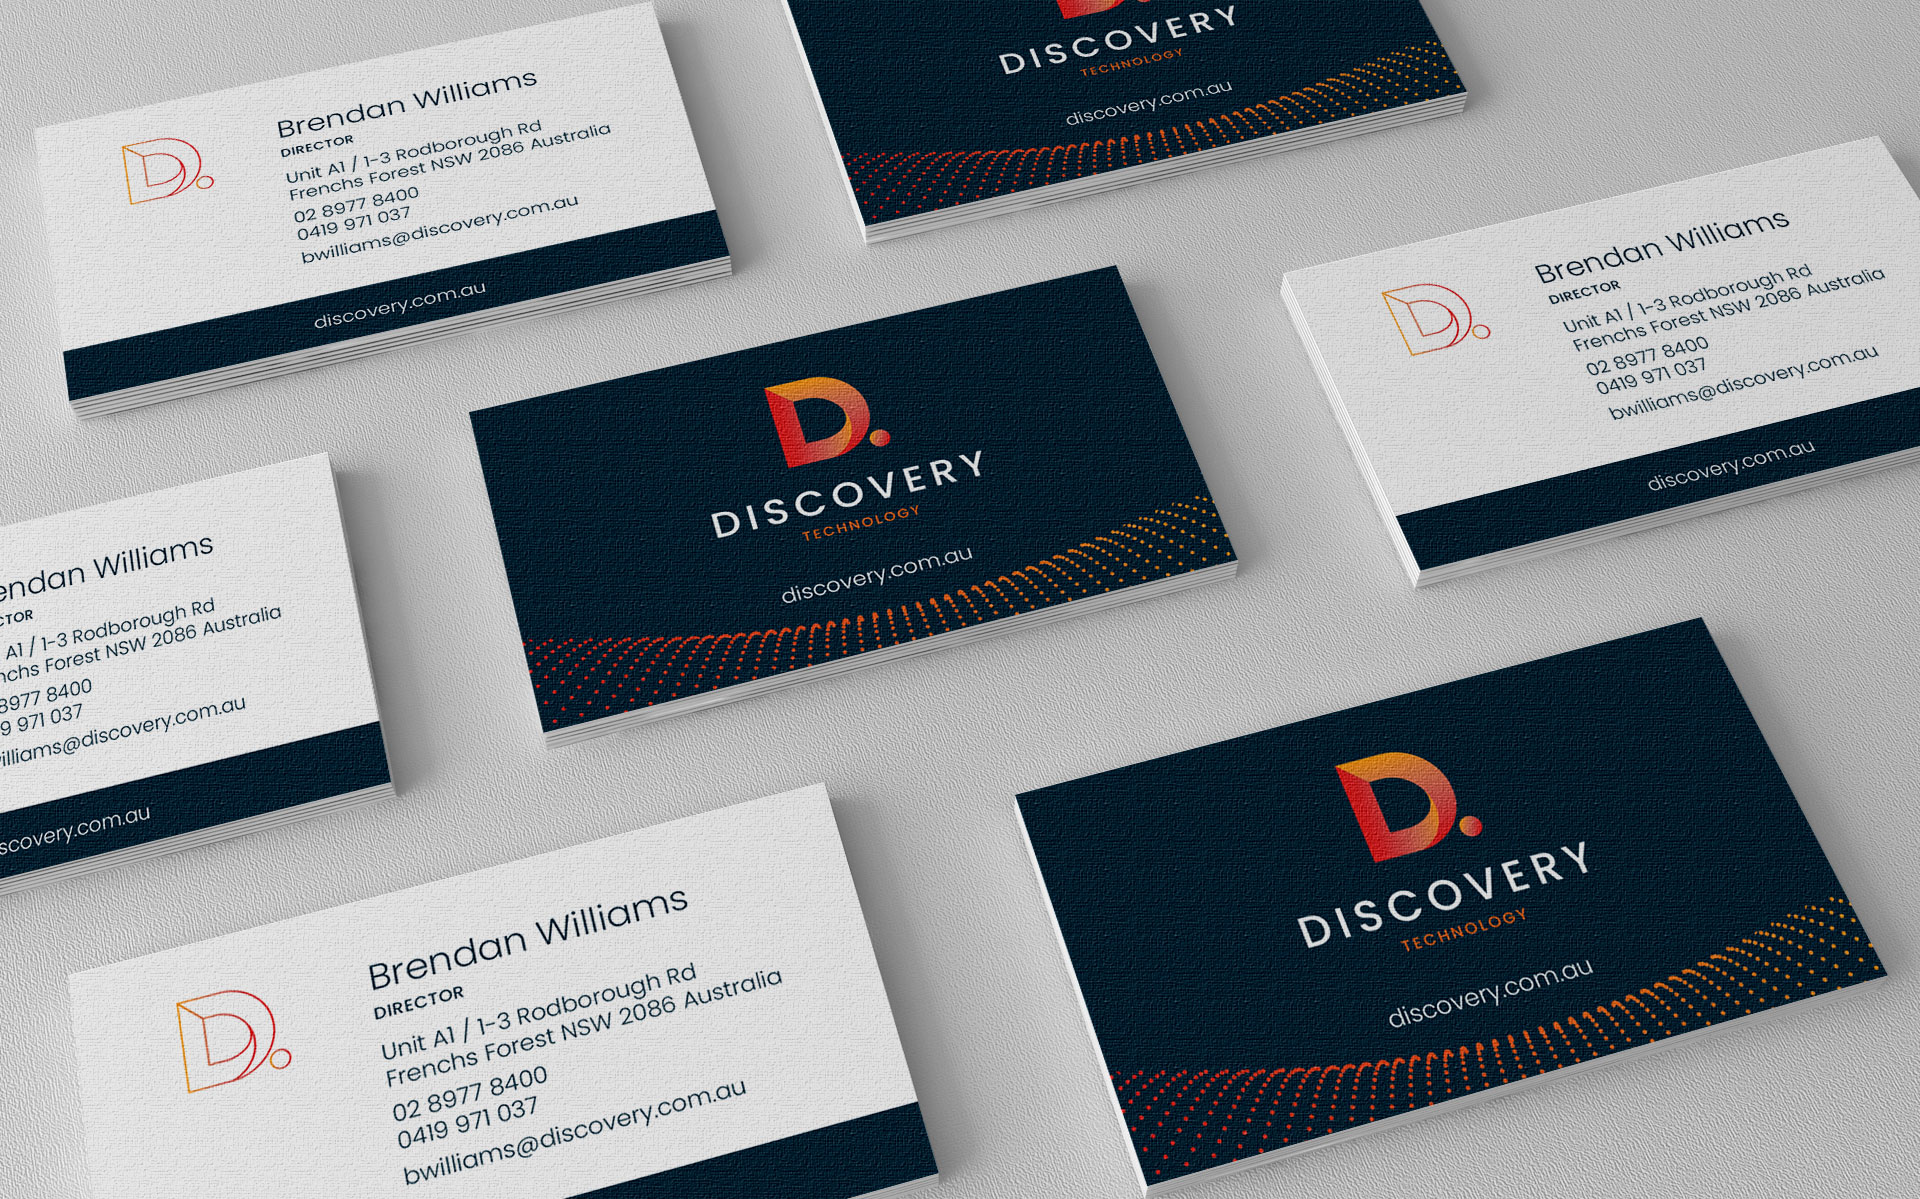 Discovery Technology logo, branding, marketing, publications & website design & build by Amy at Yellow Sunday